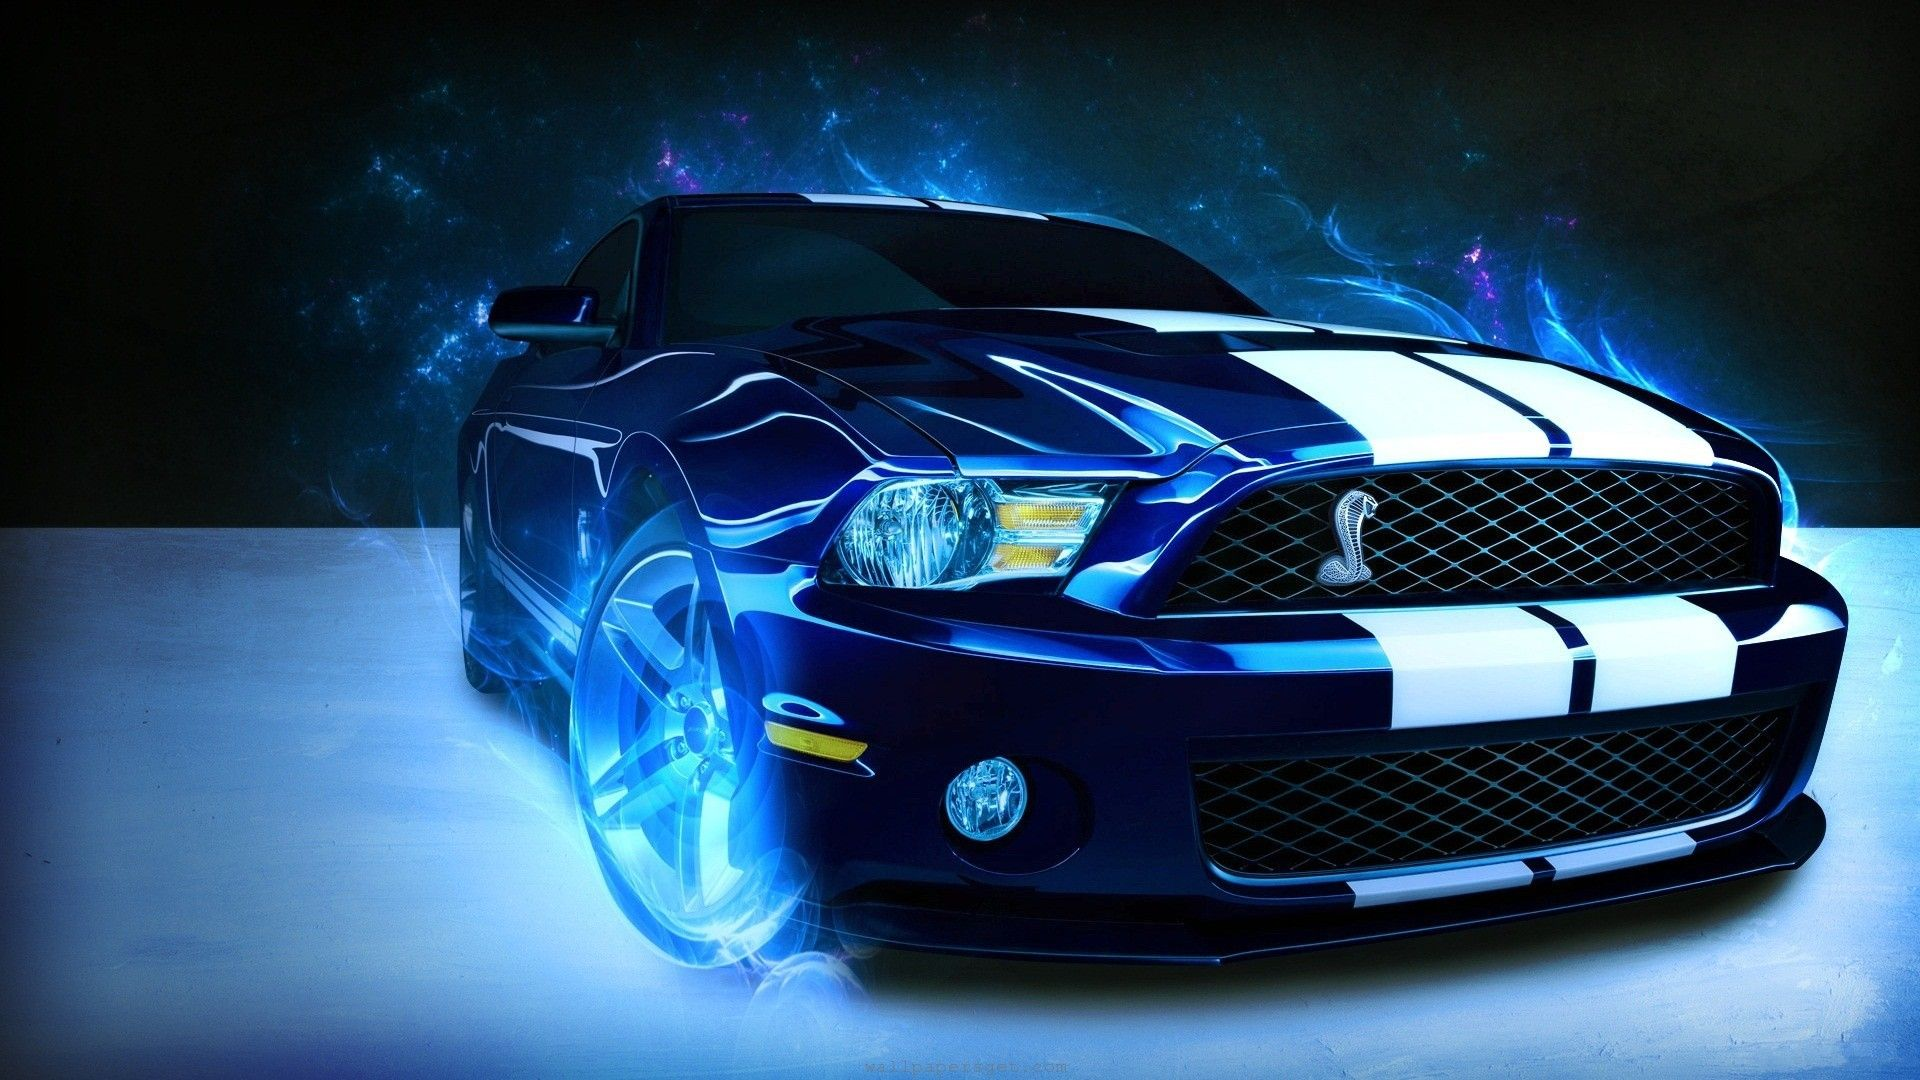 Blue Mustang Wallpapers   Top Blue Mustang Backgrounds 1920x1080